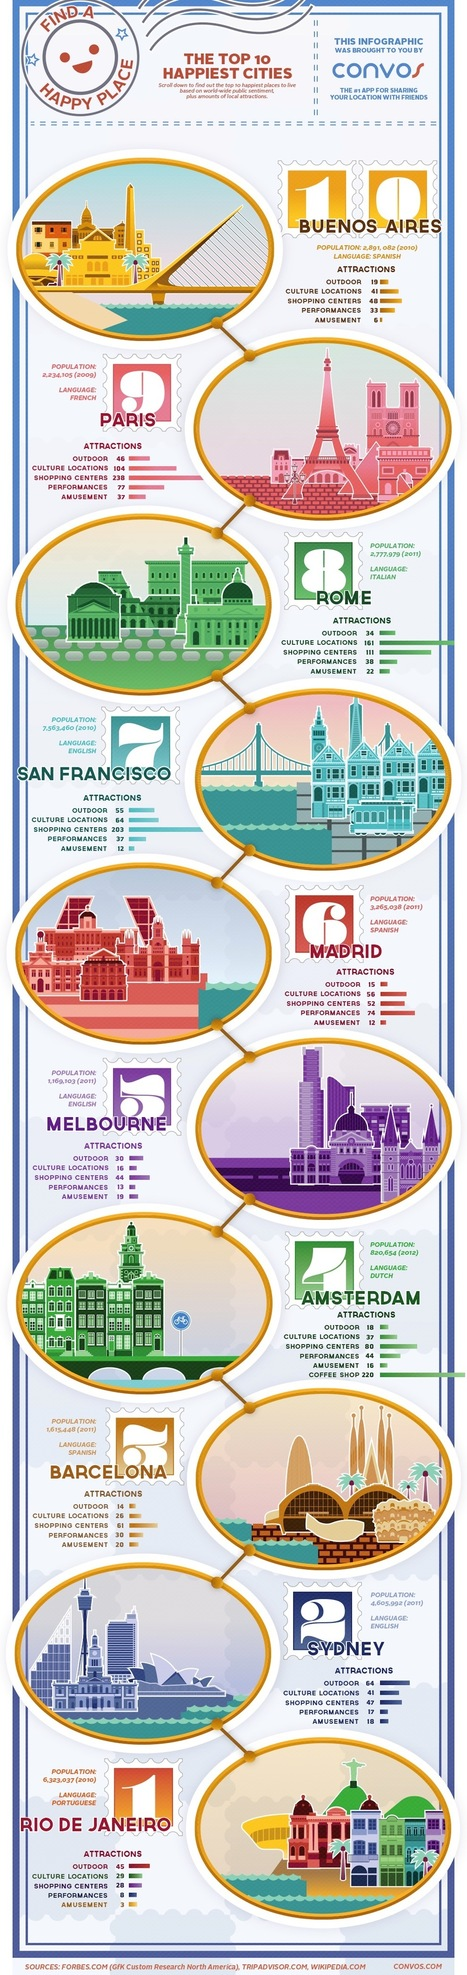 The Happiest Cities in the World [Infographic] | Le BONHEUR comme indice d'épanouissement social et économique. | Scoop.it